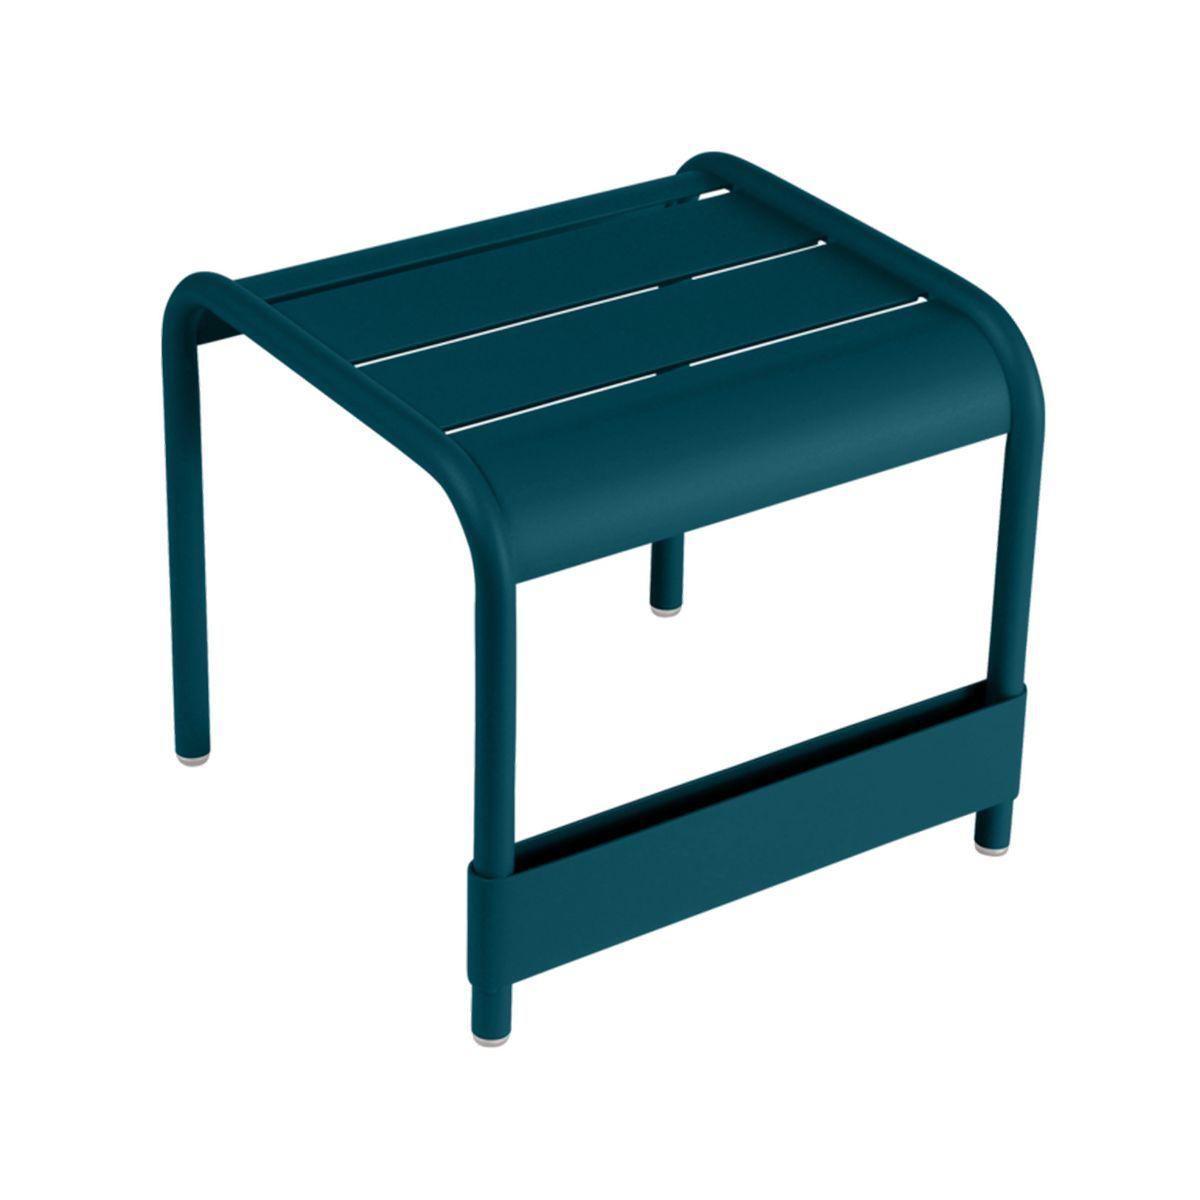 Table basse Luxembourg Fermob petit bleu acapulco